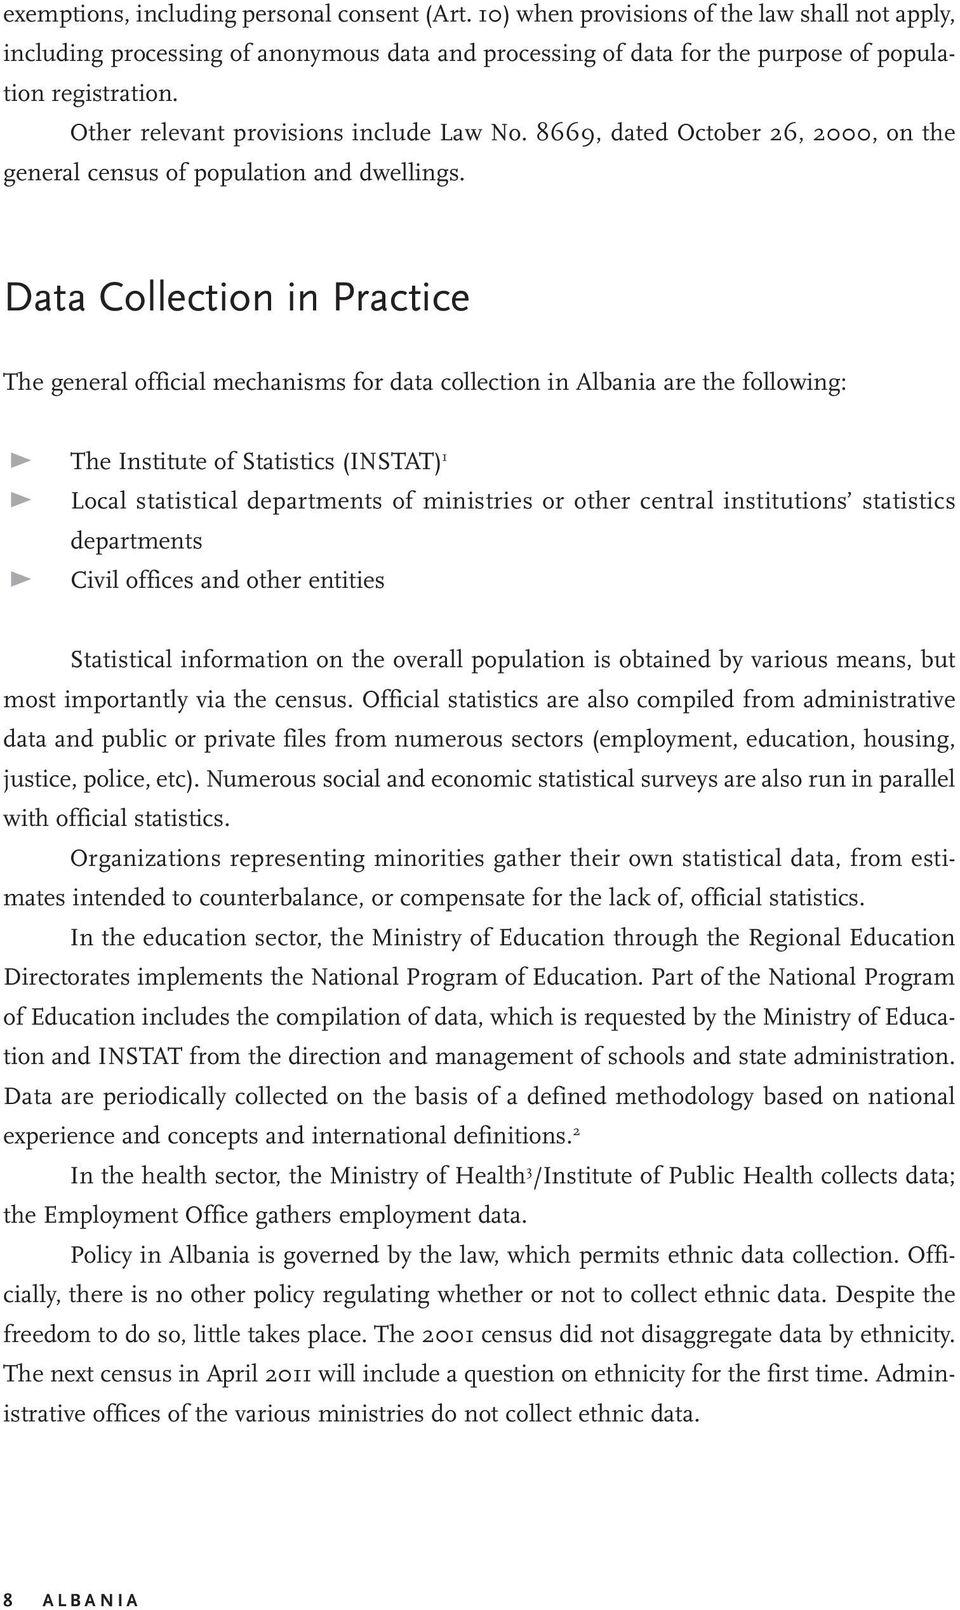 Data Collection in Practice The general official mechanisms for data collection in Albania are the following: The Institute of Statistics (INSTAT) 1 Local statistical departments of ministries or